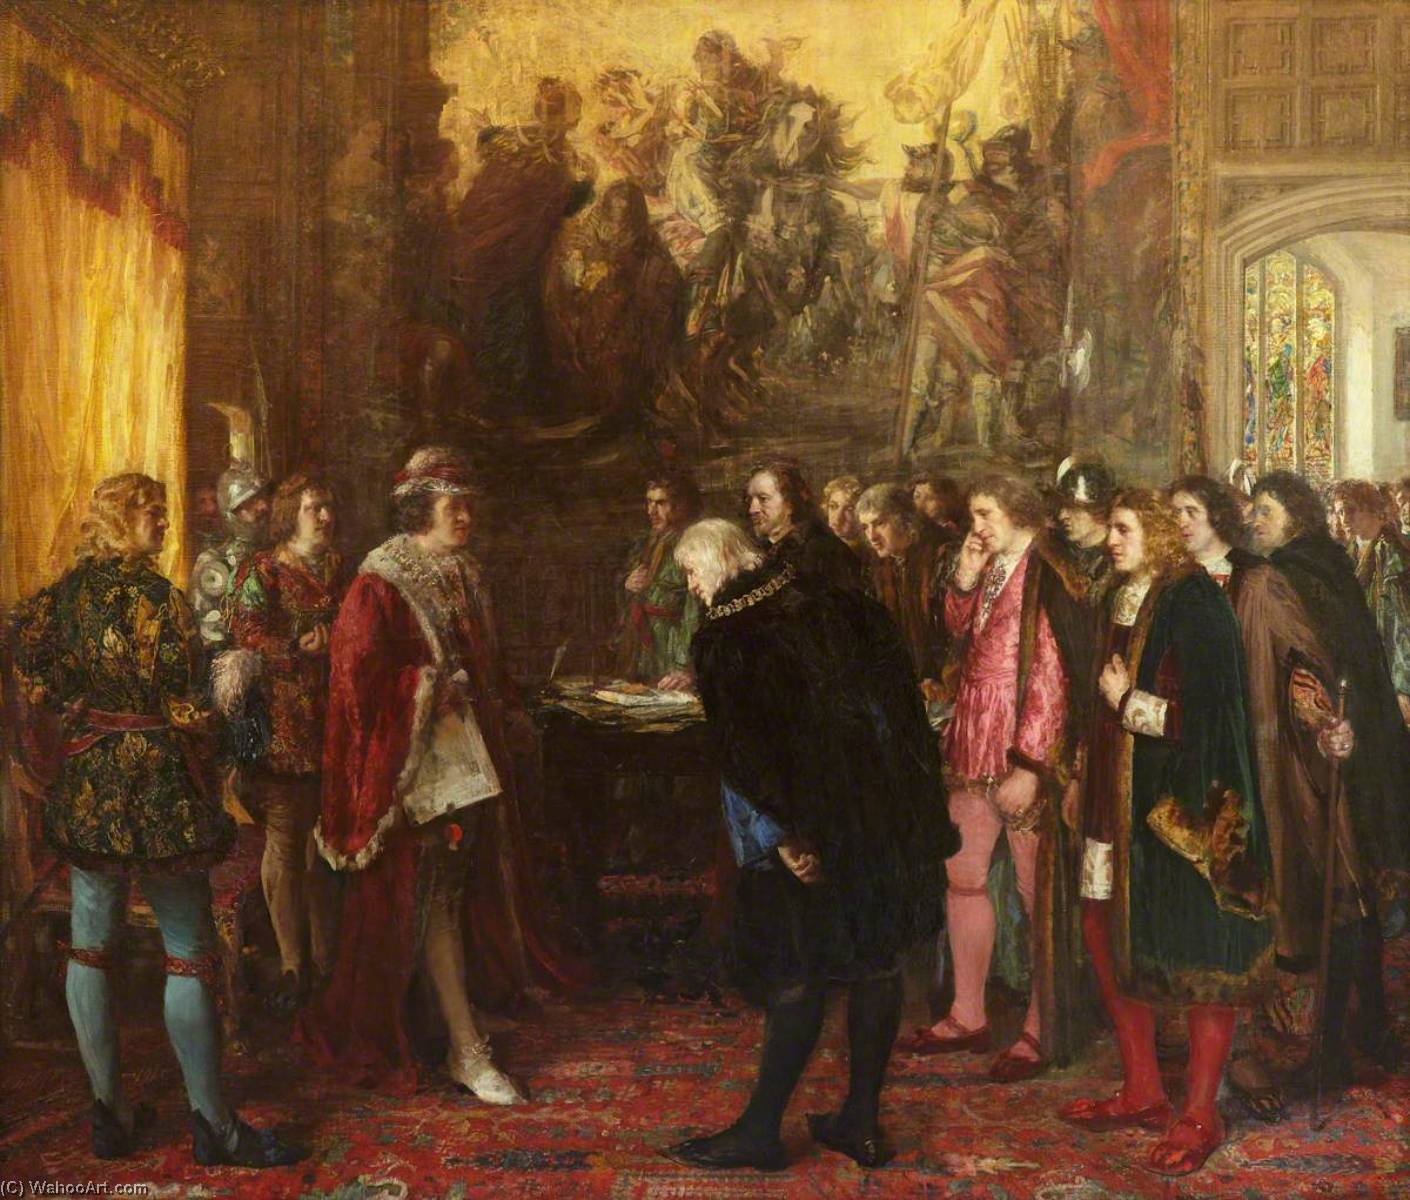 The Granting of a Royal Charter by King James III to the Provost, Bailies and Councillors of the Burgh of Edinburgh in the Year 1482, Oil On Canvas by George Ogilvy Reid